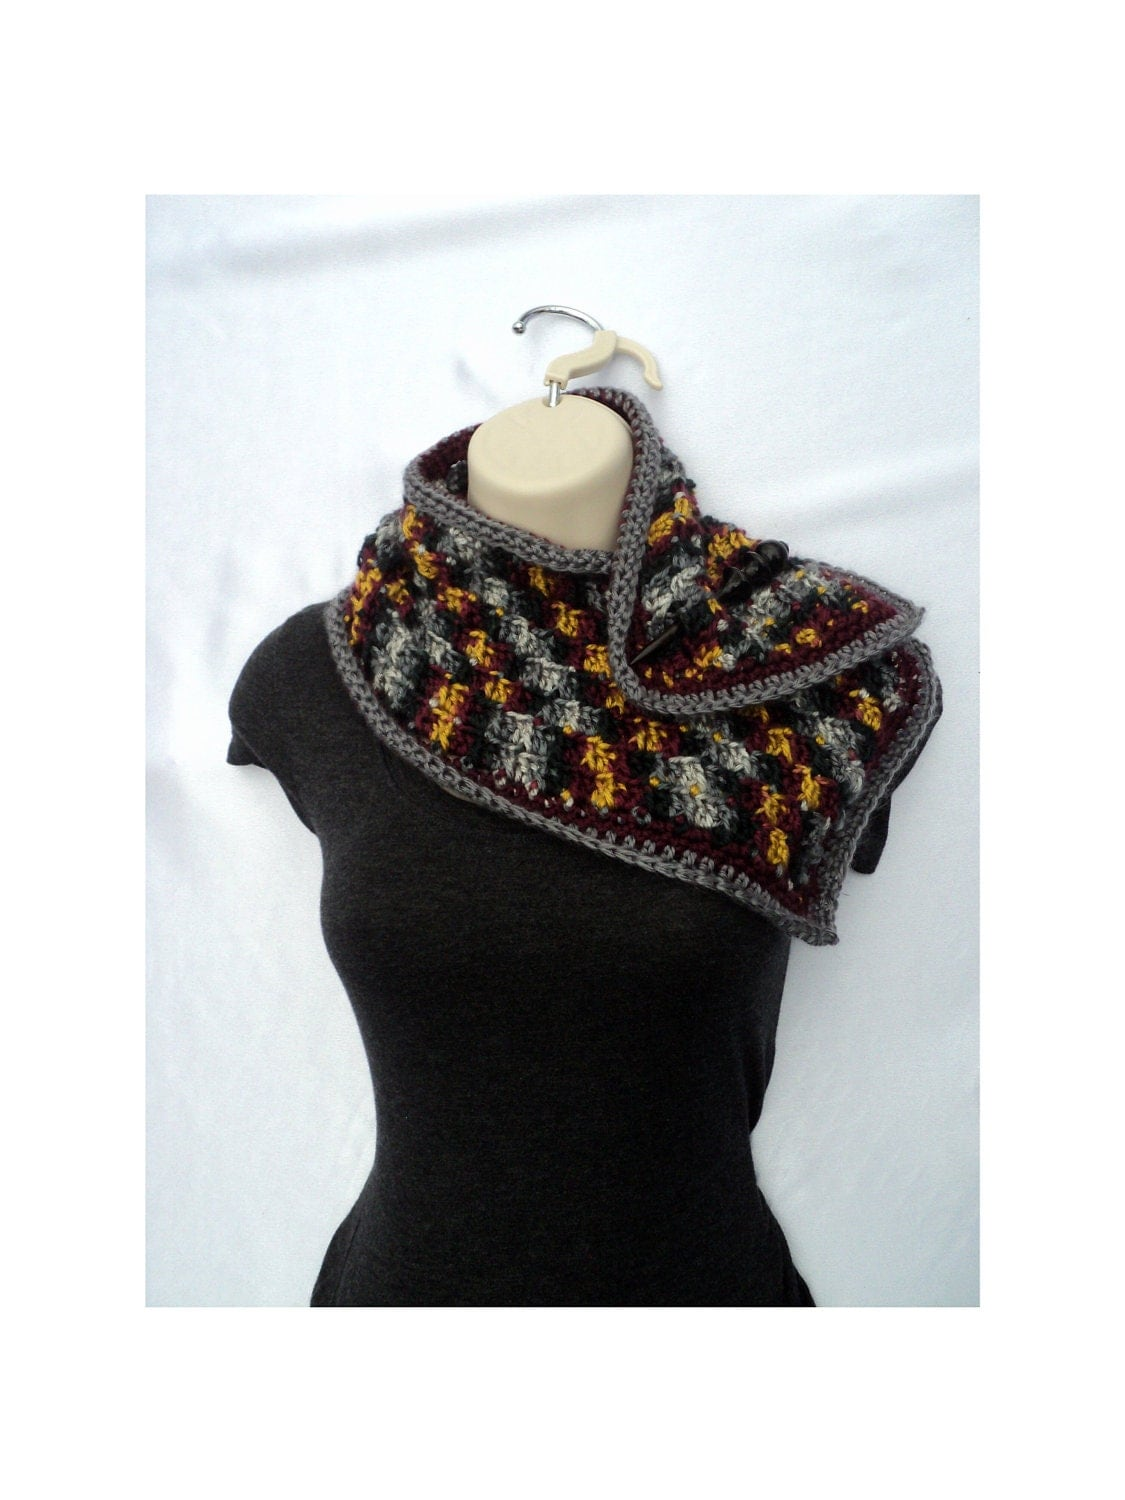 CROCHET PATTERN ONLY  Trellis Neck Scarf in two yarn weights  Multi  Neck Scarves Crochet Patterns